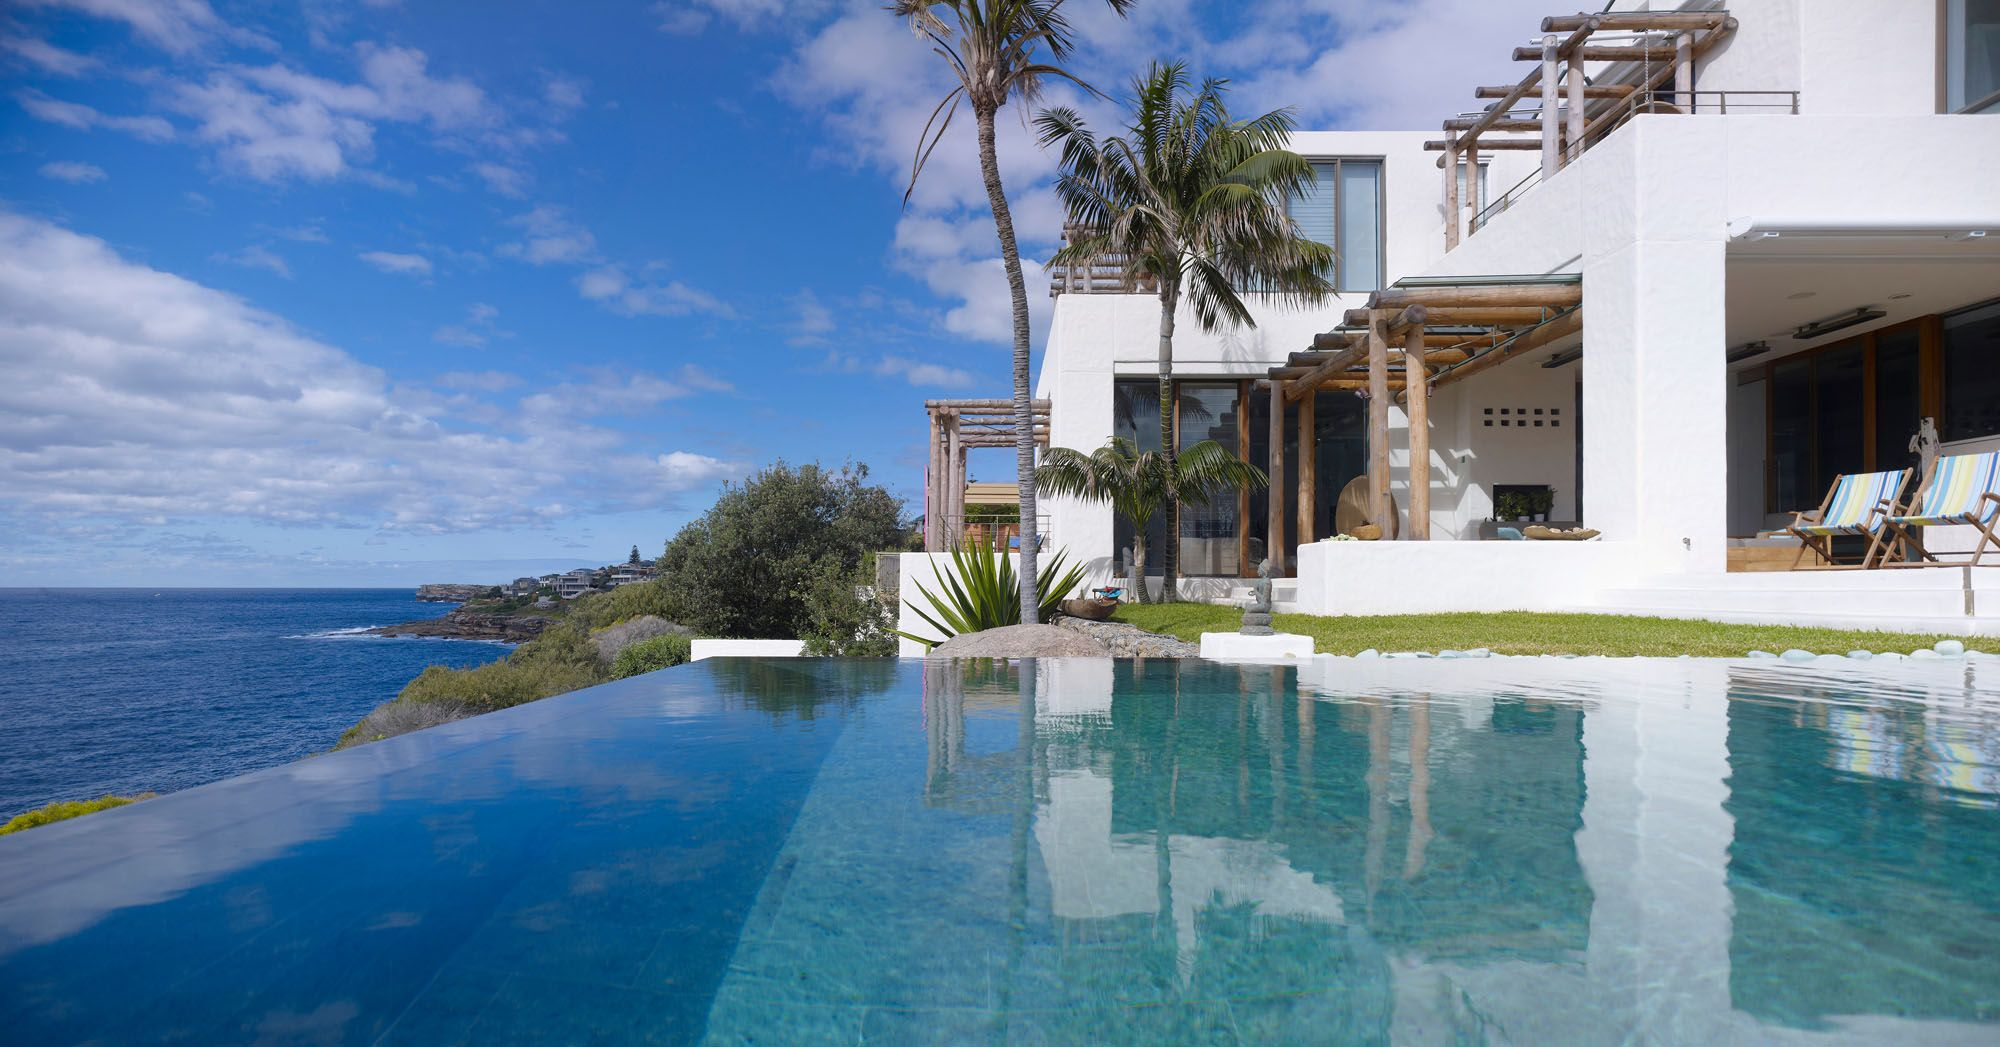 Infinity Pool, Beautiful Waterfront Home in Coogee, Australia ...